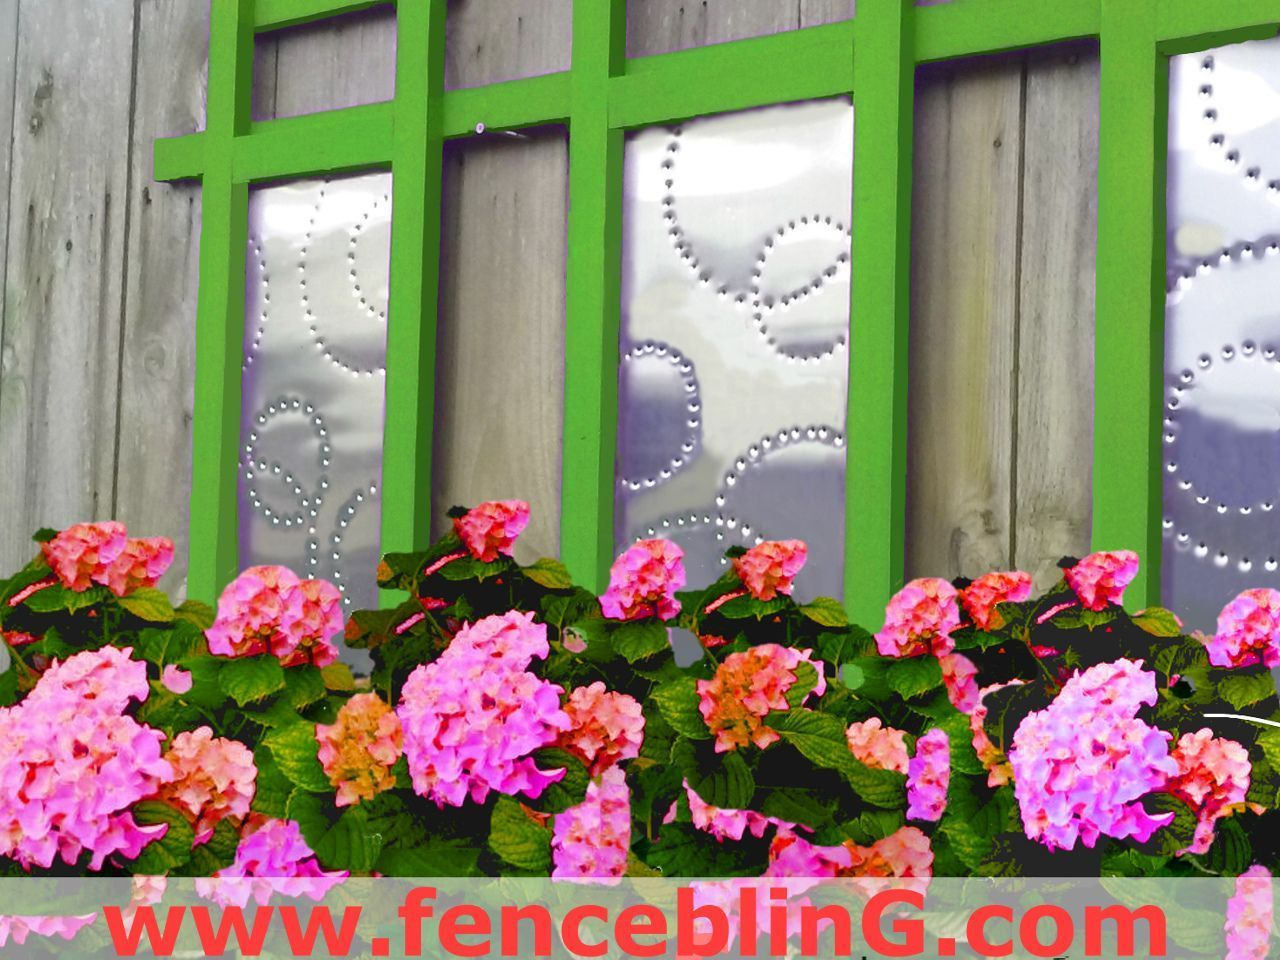 Outdoor wall art geometric fence bling in green is a lovely delight